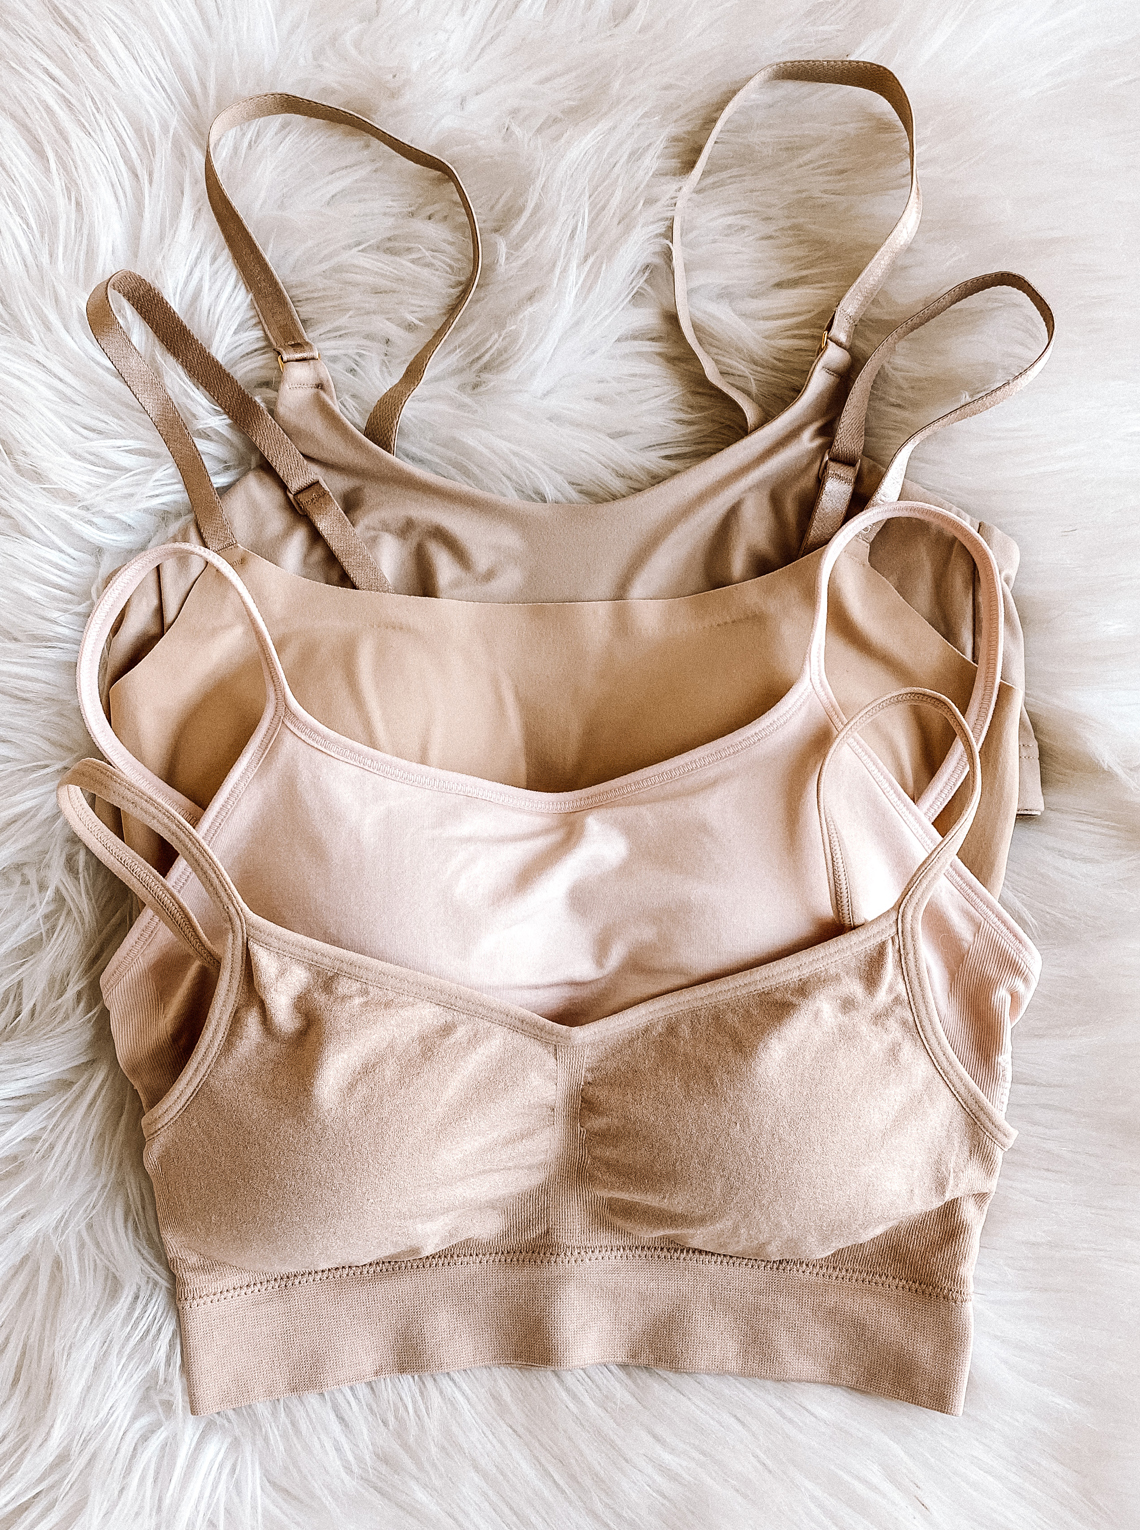 Fashion Jackson Amazon T-Shirt Bras